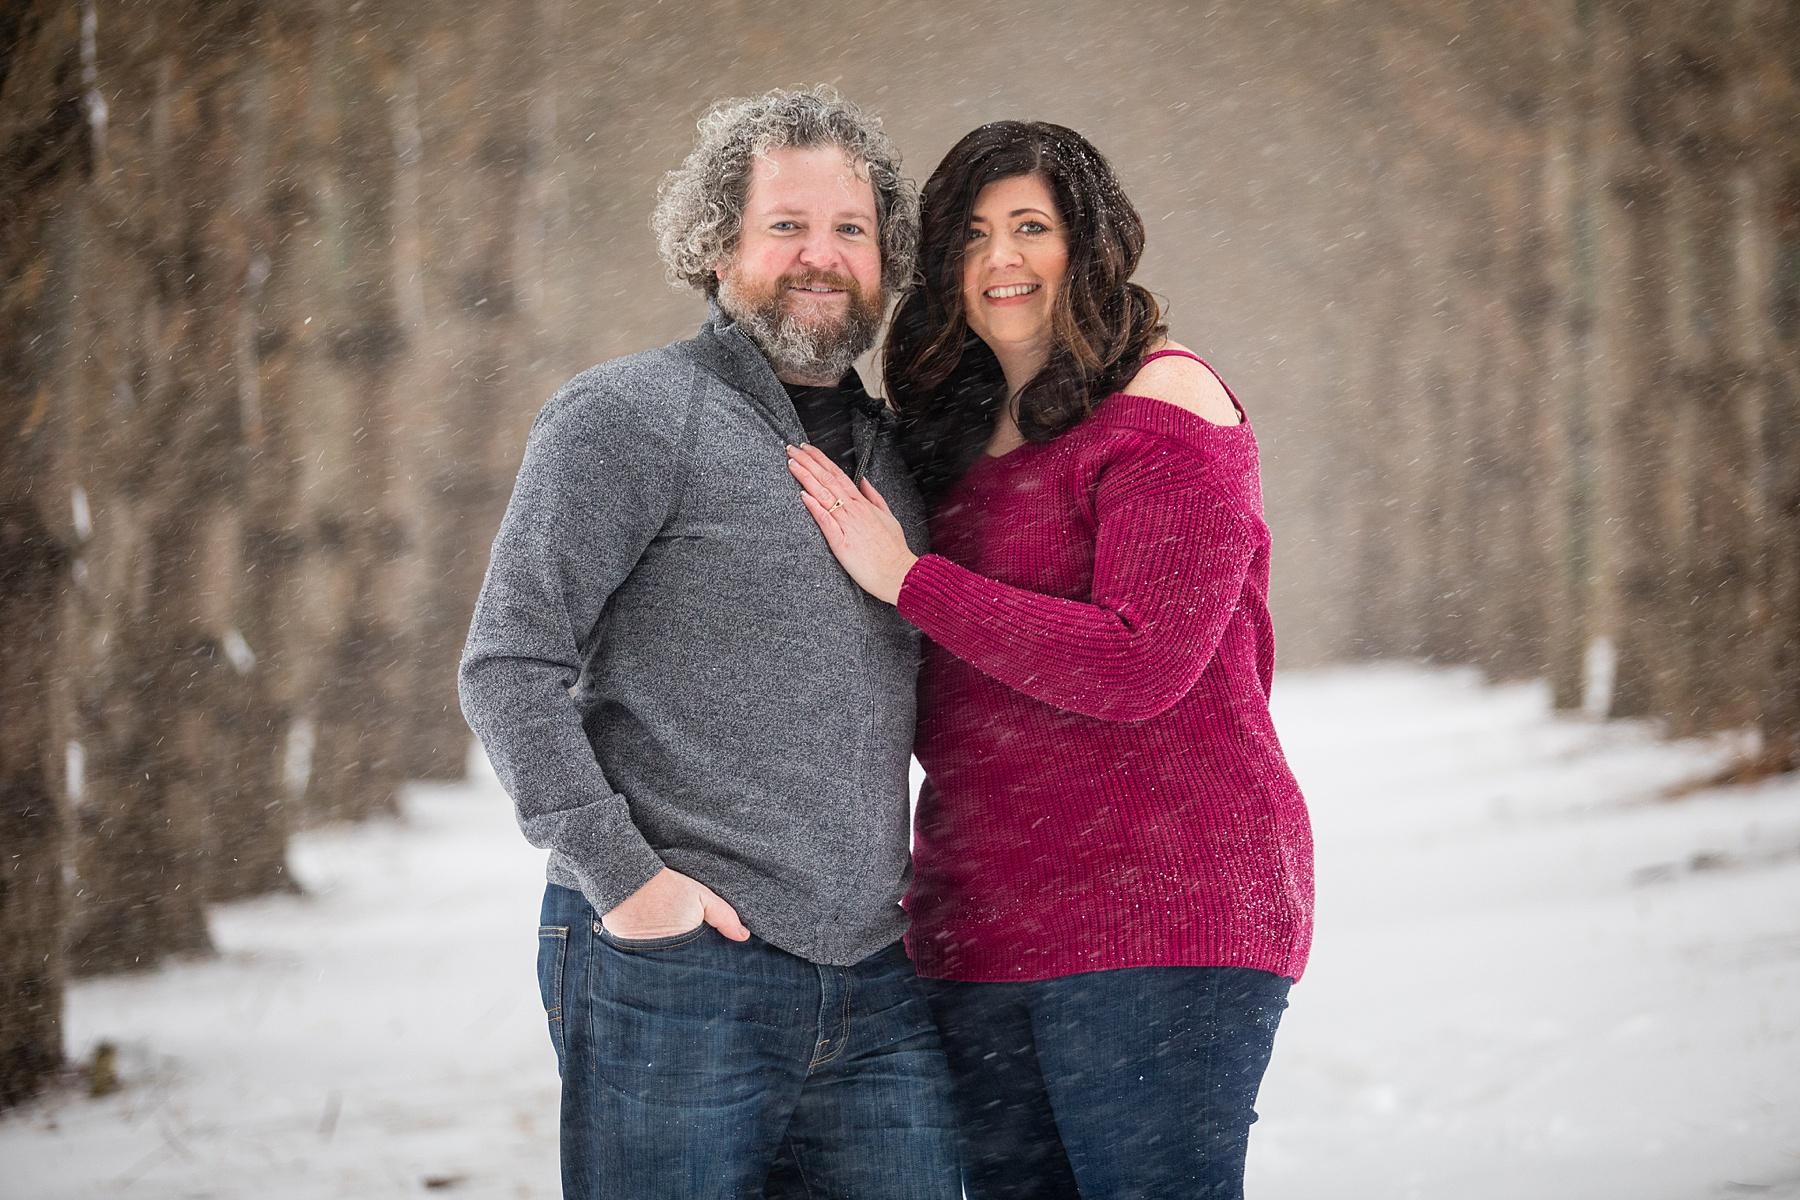 Brandon_Shafer_Photography_Winter_Engagement001.JPG